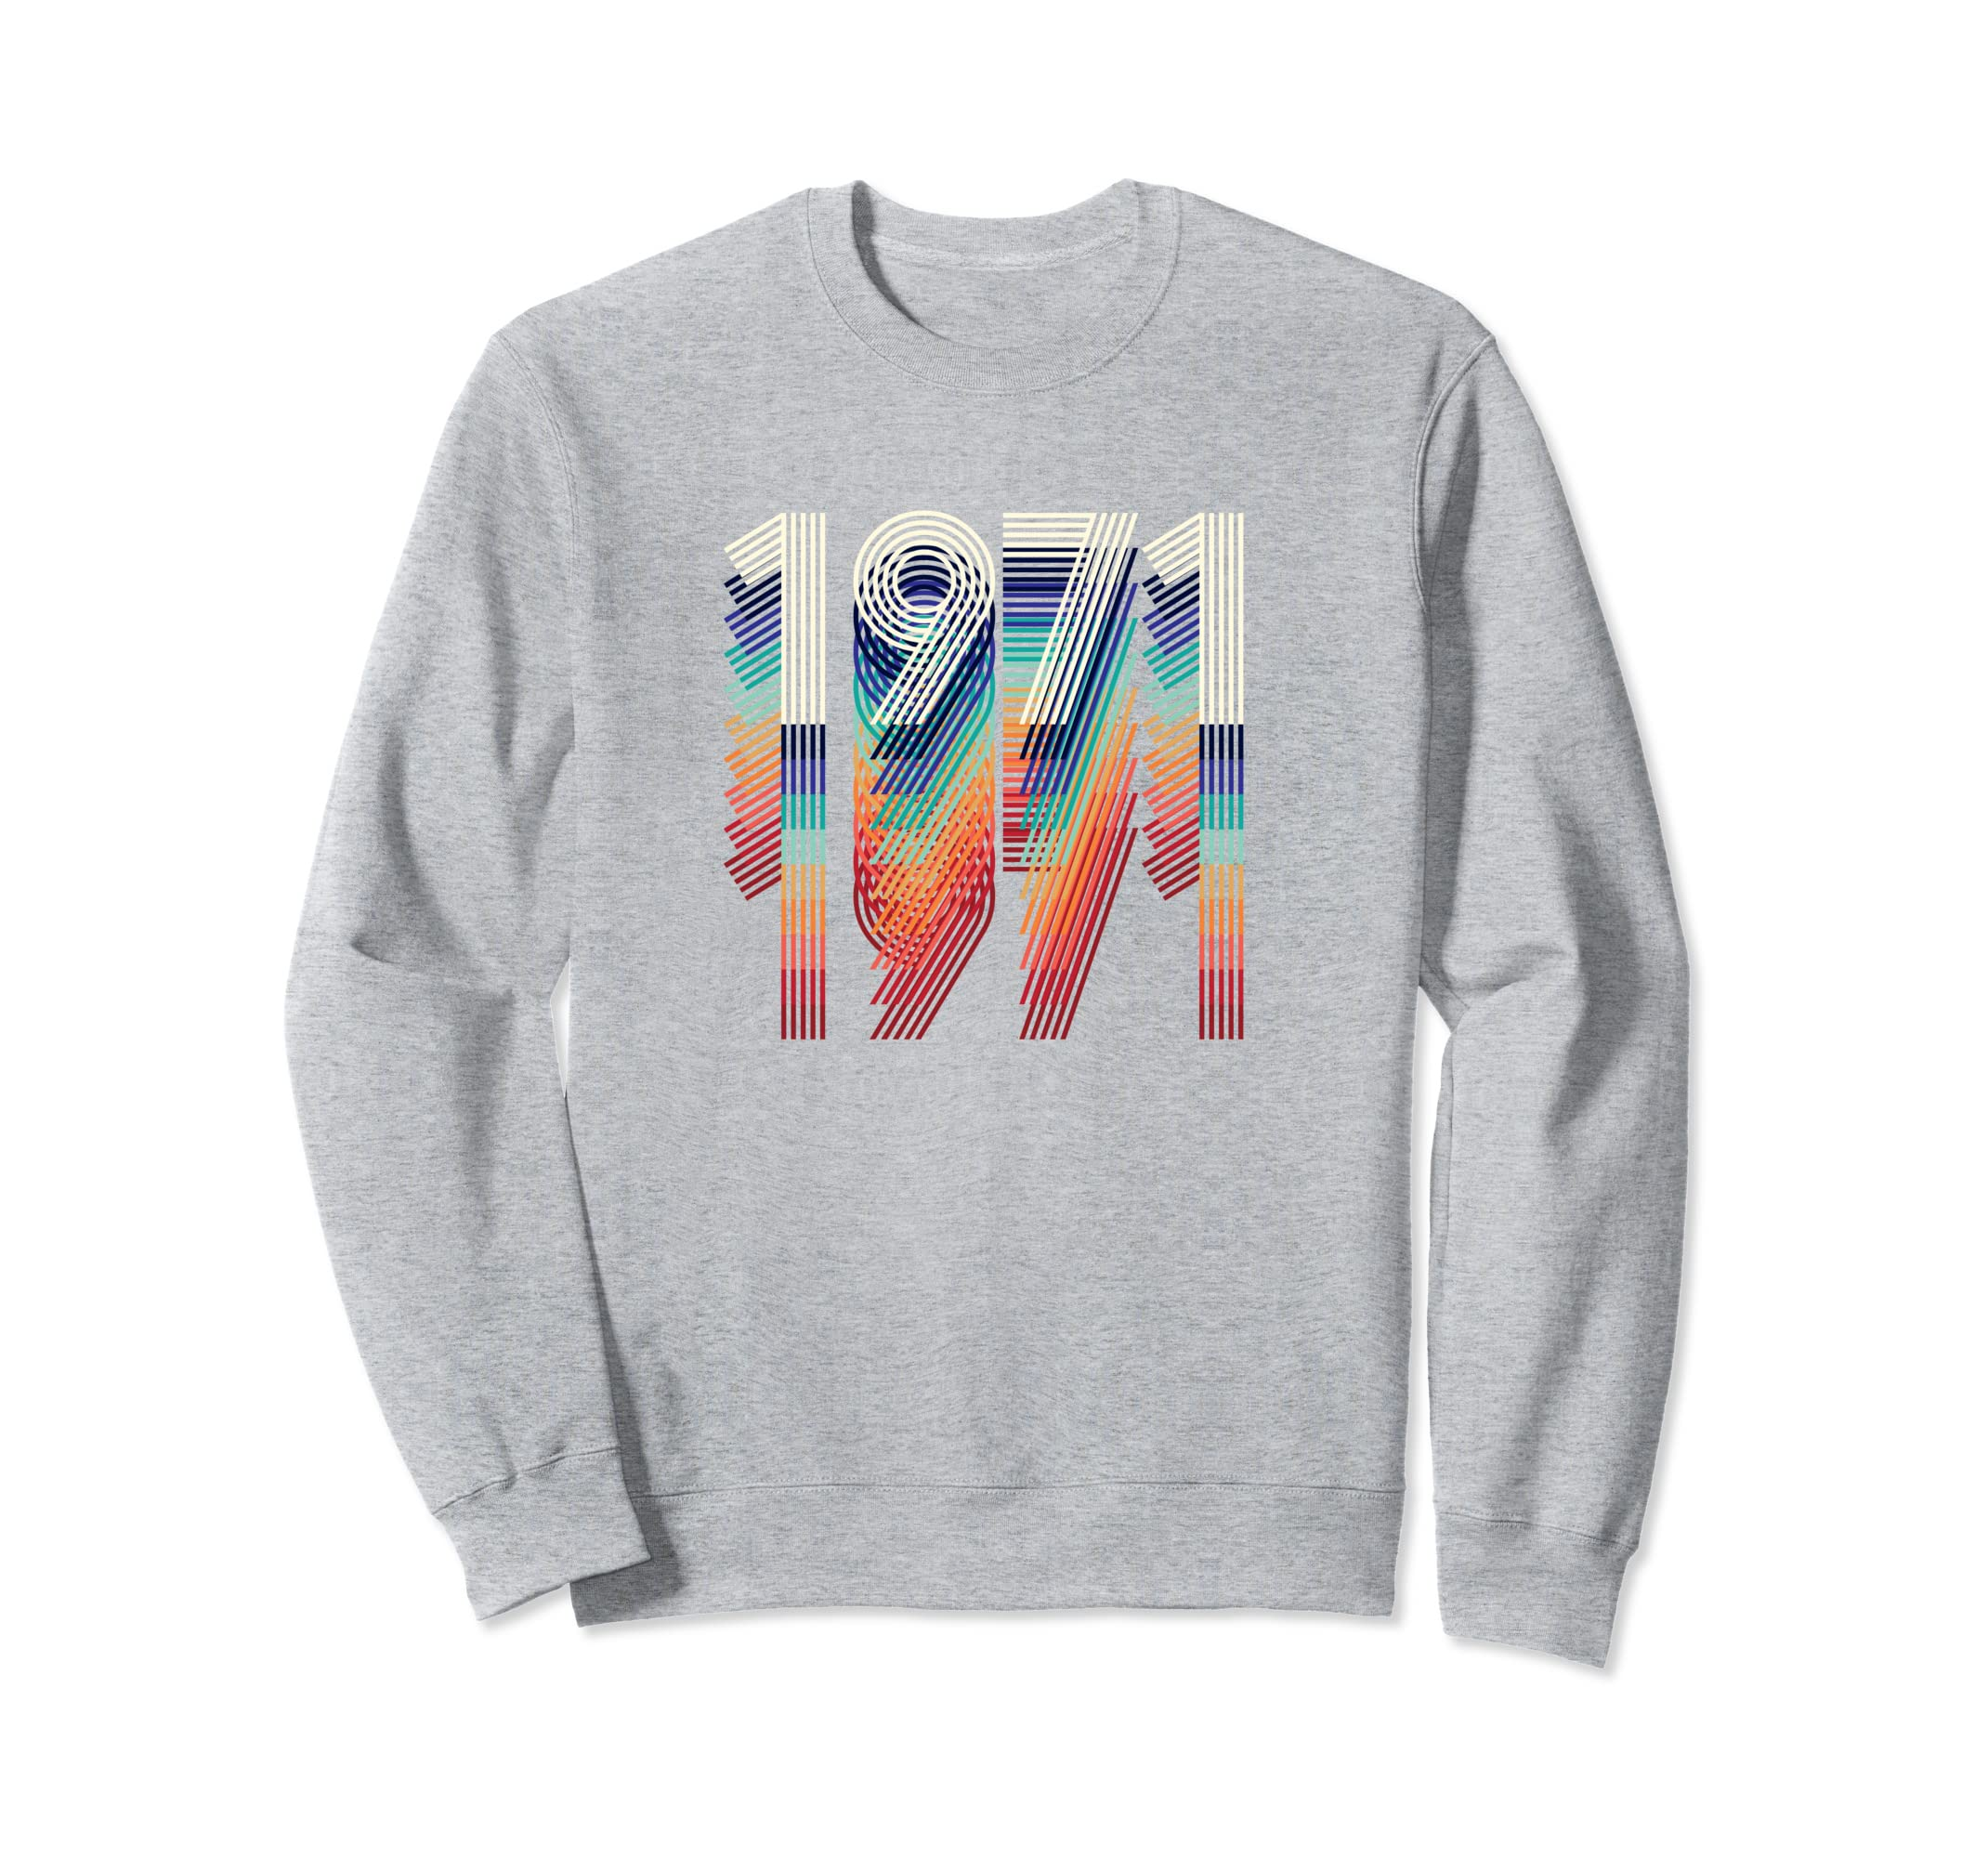 Vintage 1971 Sweatshirt 48th Birthday Gift Retro Men Women-azvn